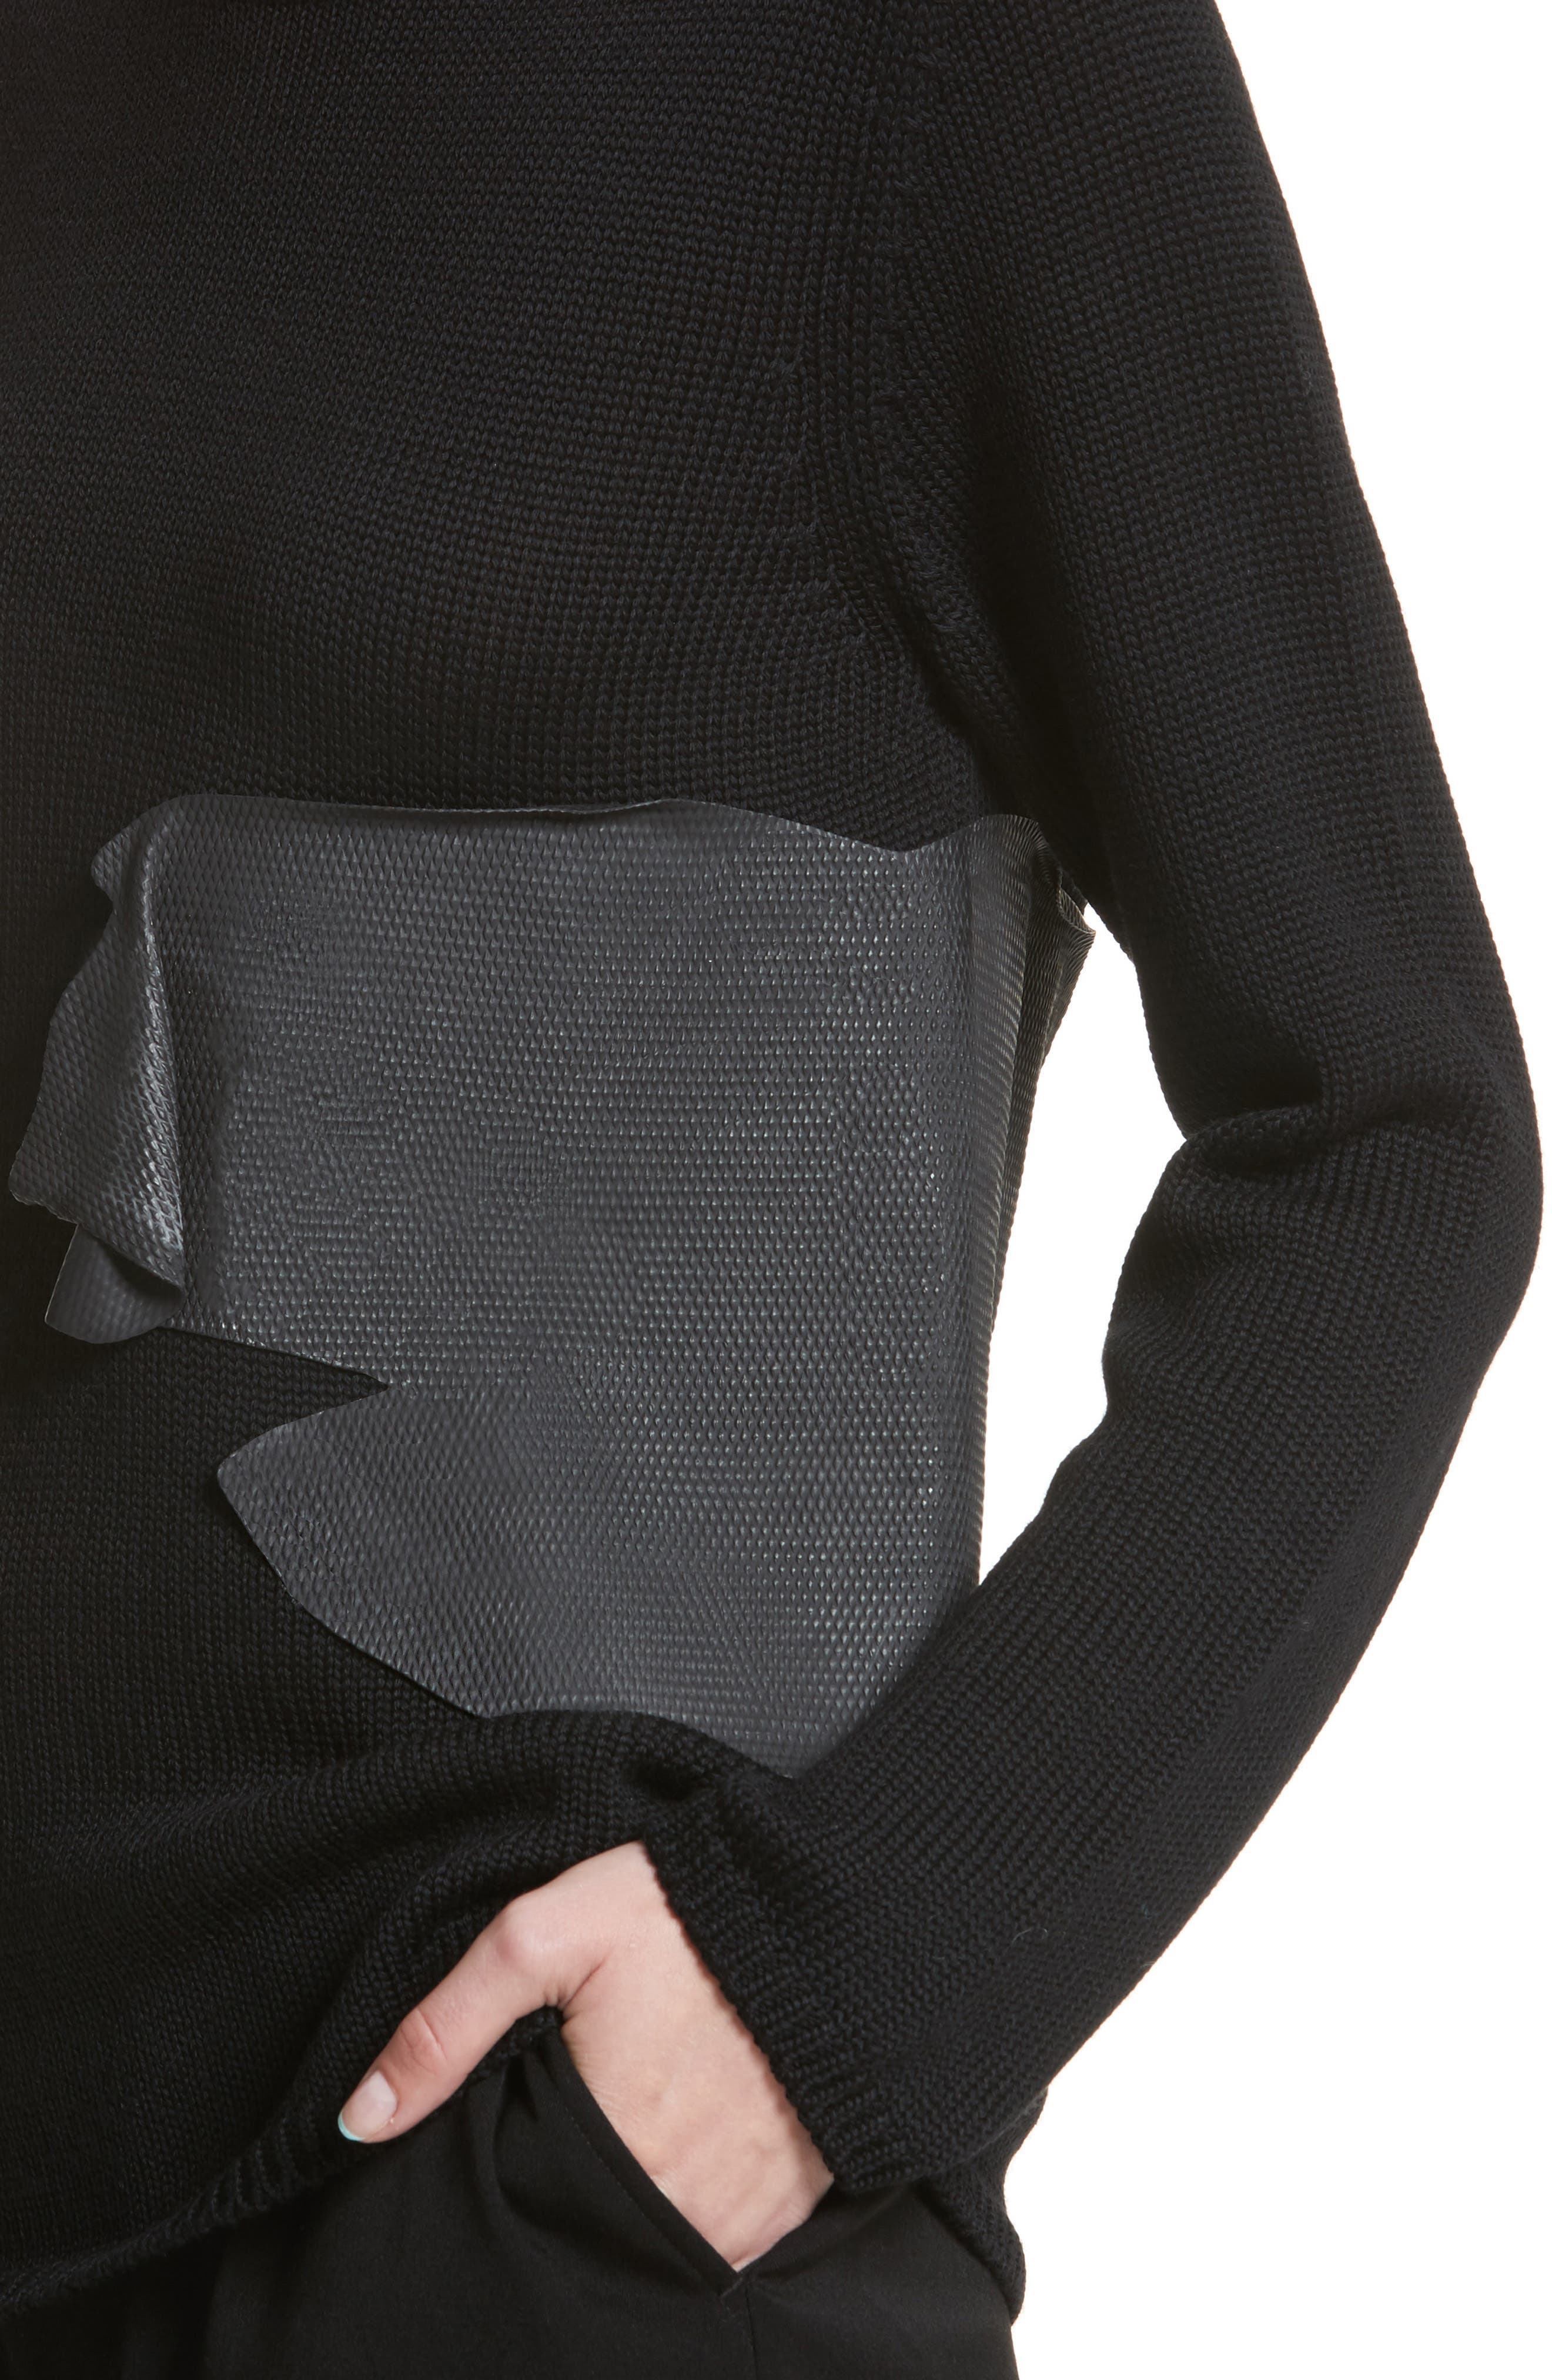 Rubber Detail Wool Sweater,                             Alternate thumbnail 4, color,                             003